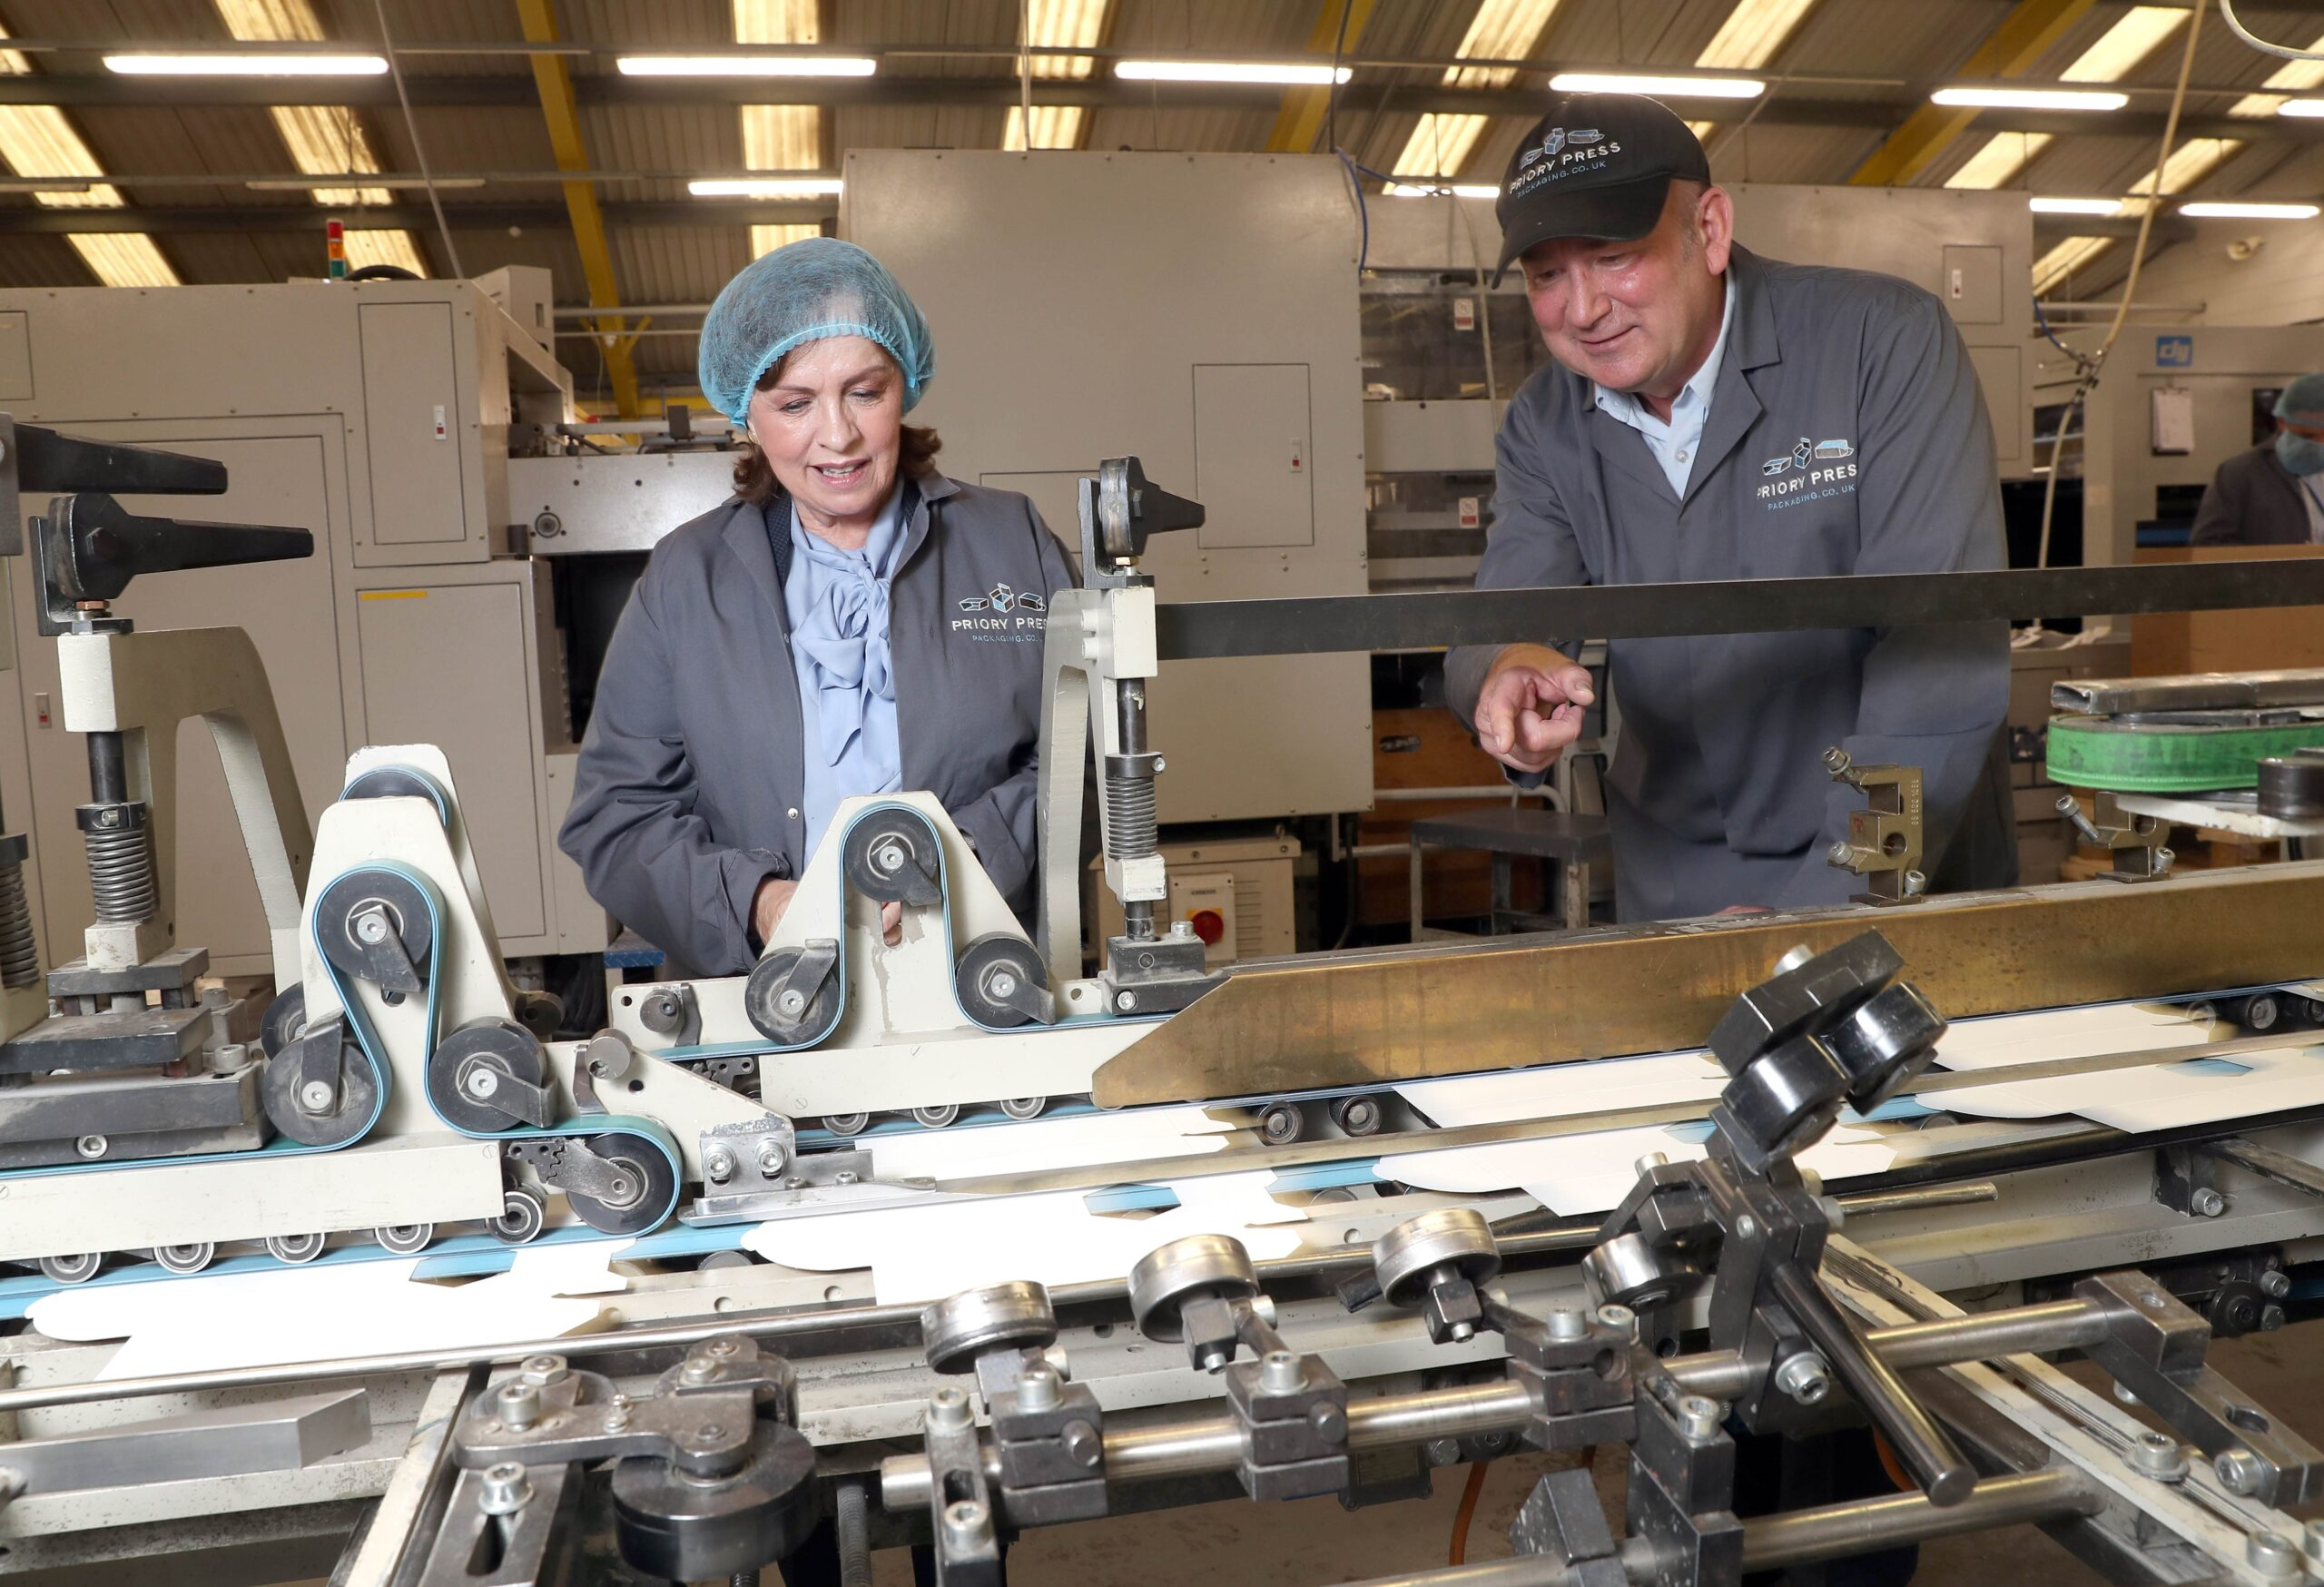 Priory £1MILLION INVESTMENT BY COUNTY DOWN MANUFACTURER PRIORY PRESS PACKAGING - Northern Ireland business news - Freelance NI Copywriter Tall Paul Marketing